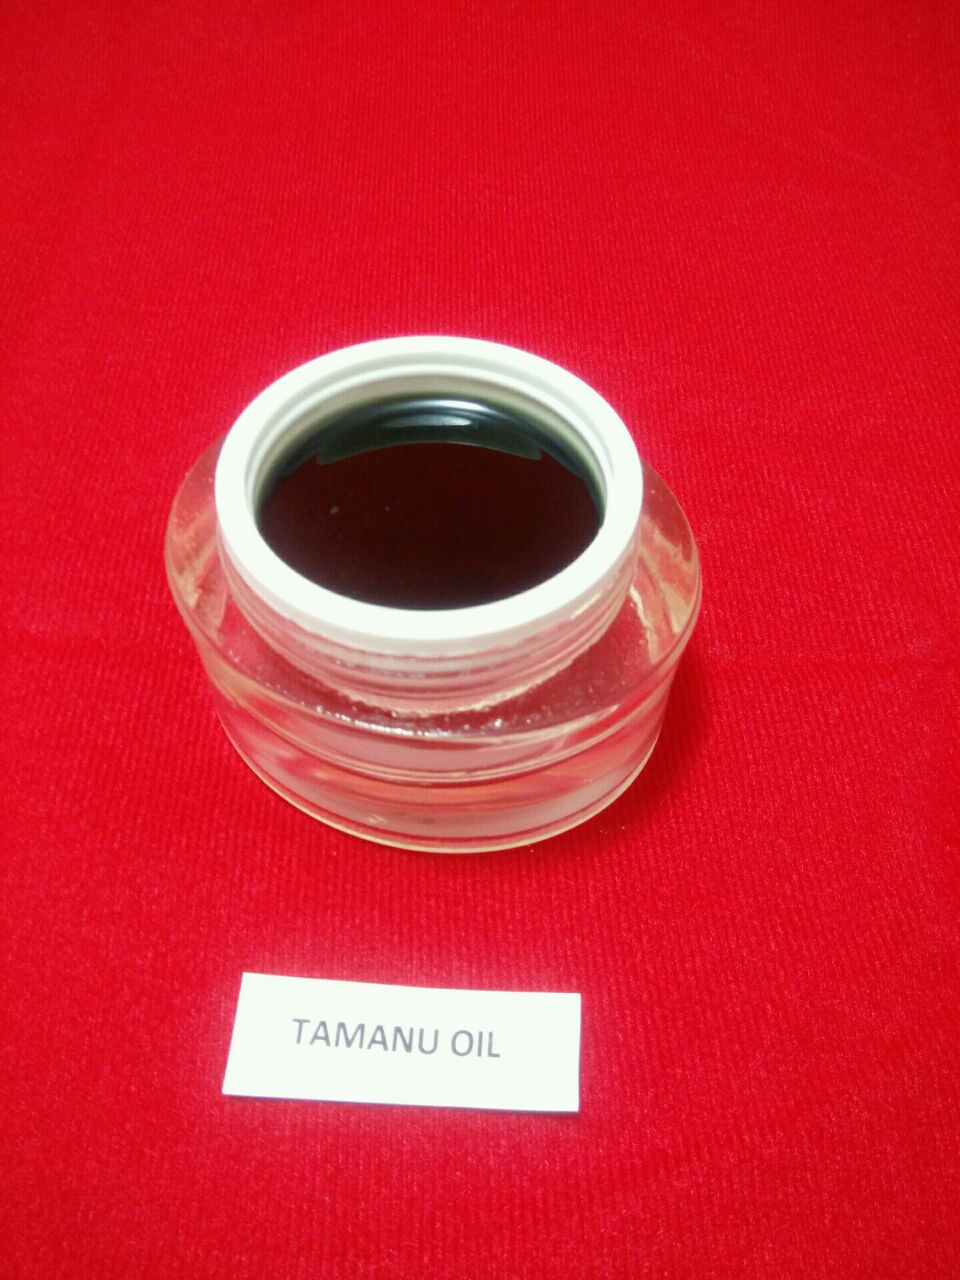 Well processed Tamanu Oil is high in antioxidants and rich in fatty acids. It has been used in anti-aging products due to its moisturizing and nourishing  properties.